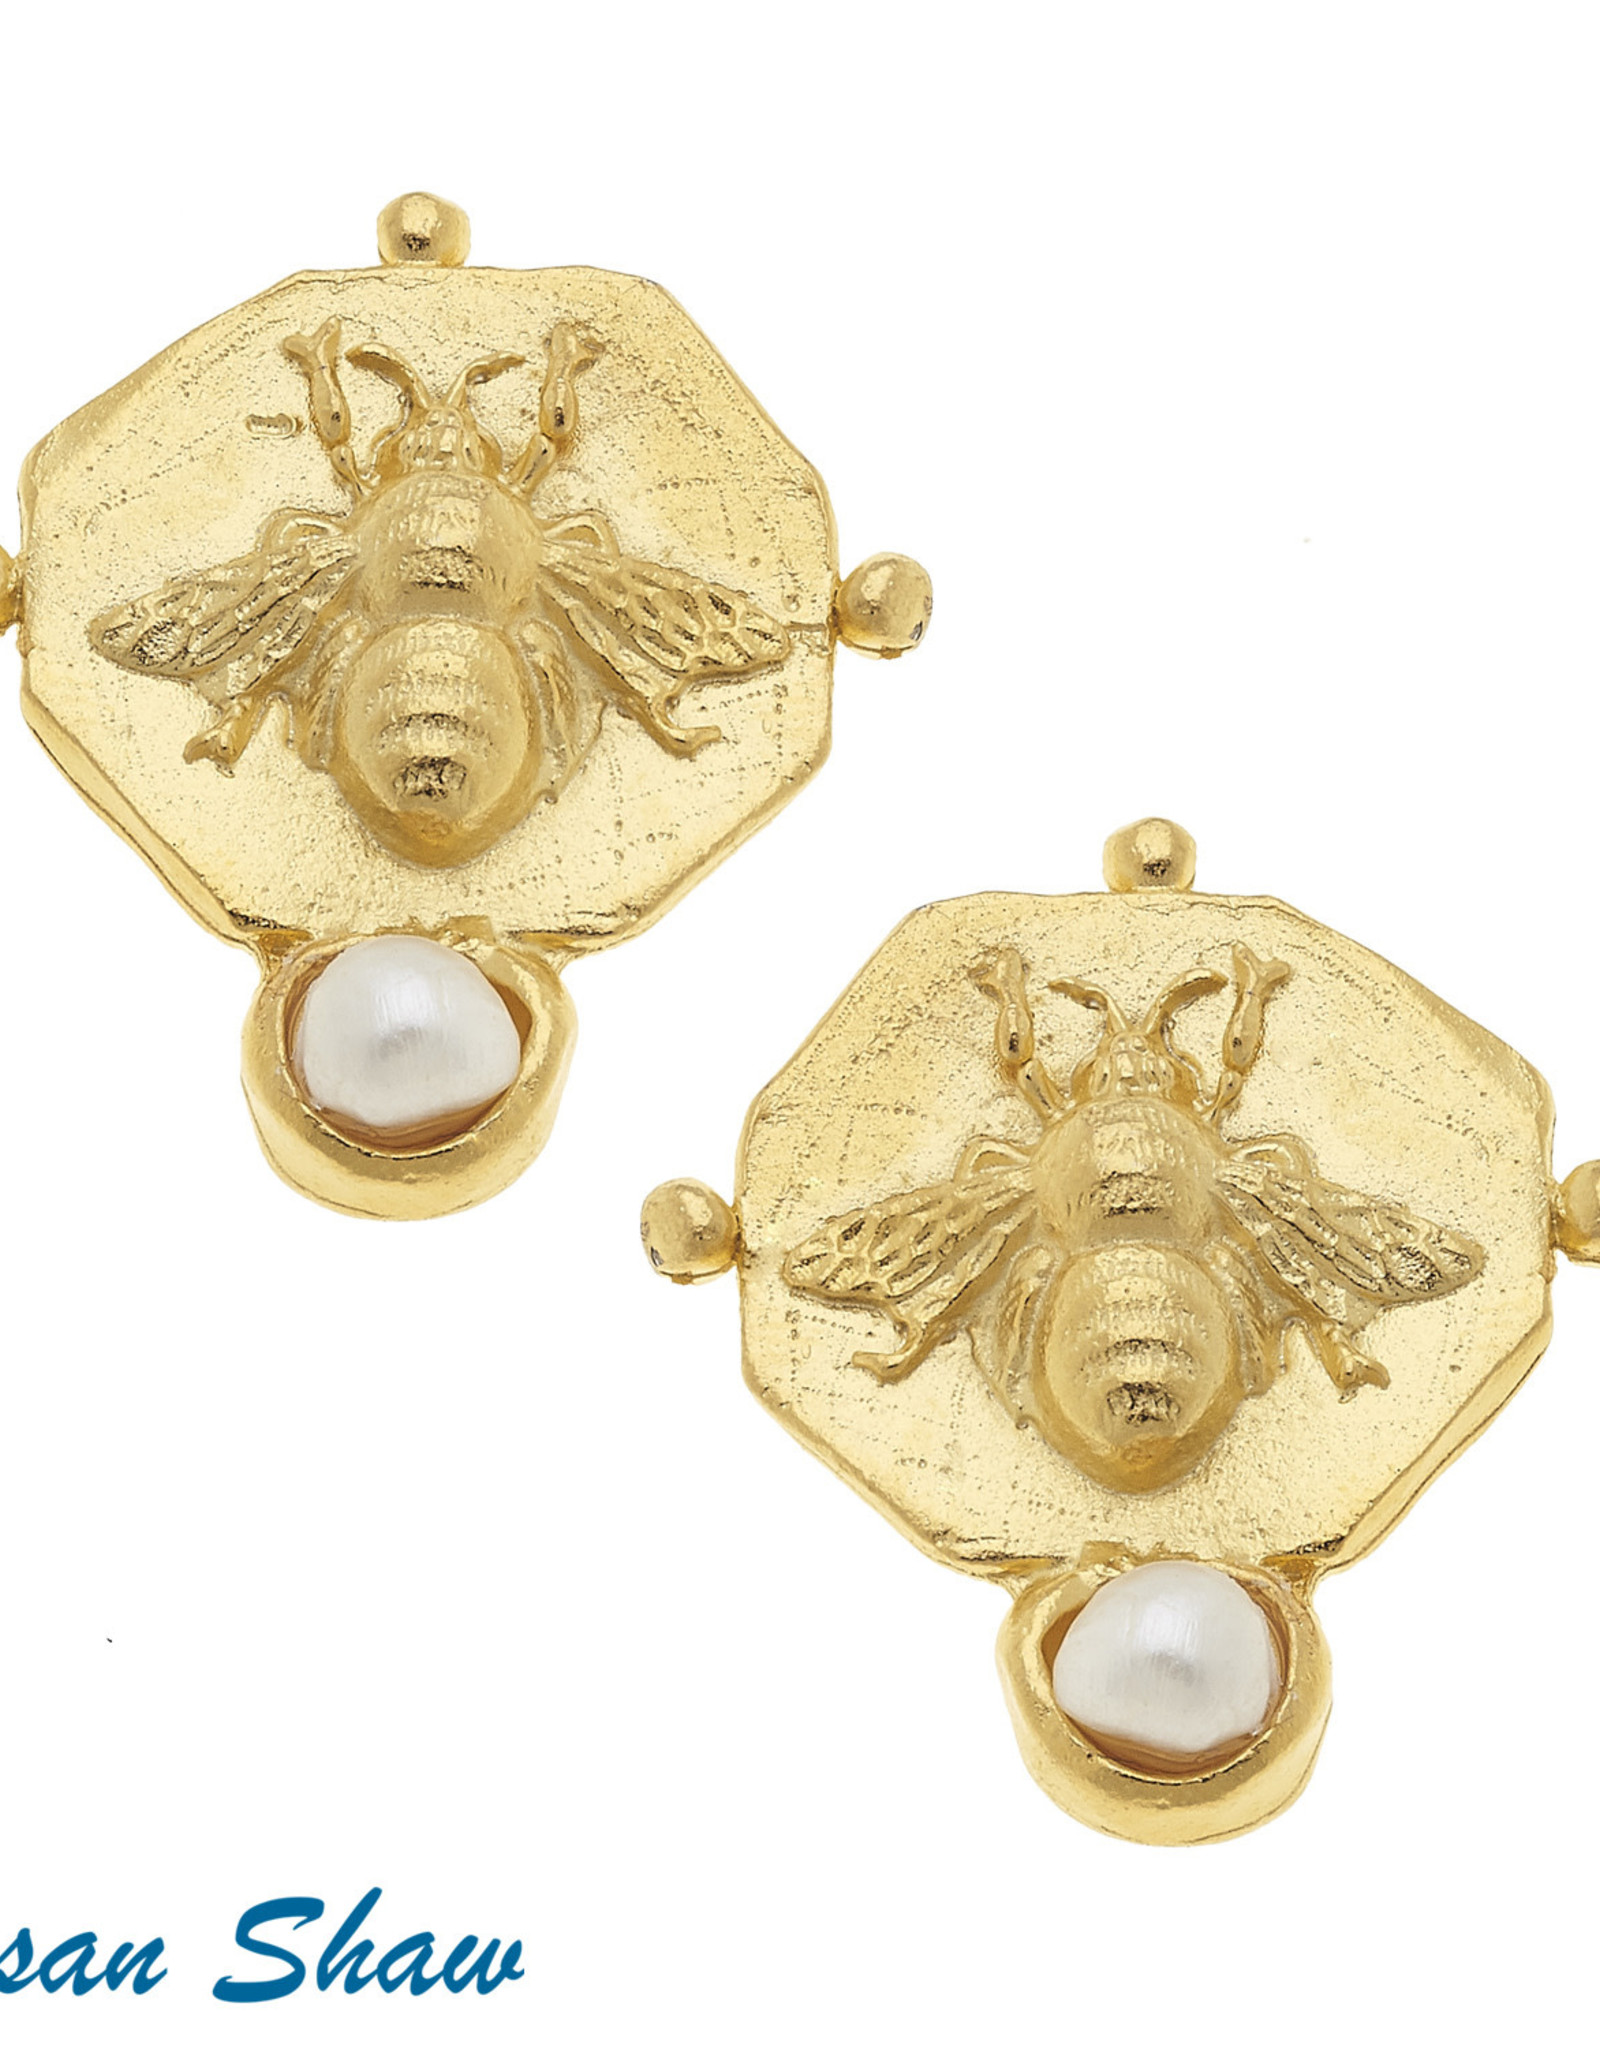 Susan Shaw Shaw Earrings GOLD Octagon Bee/Pearl Detail CLIP ON